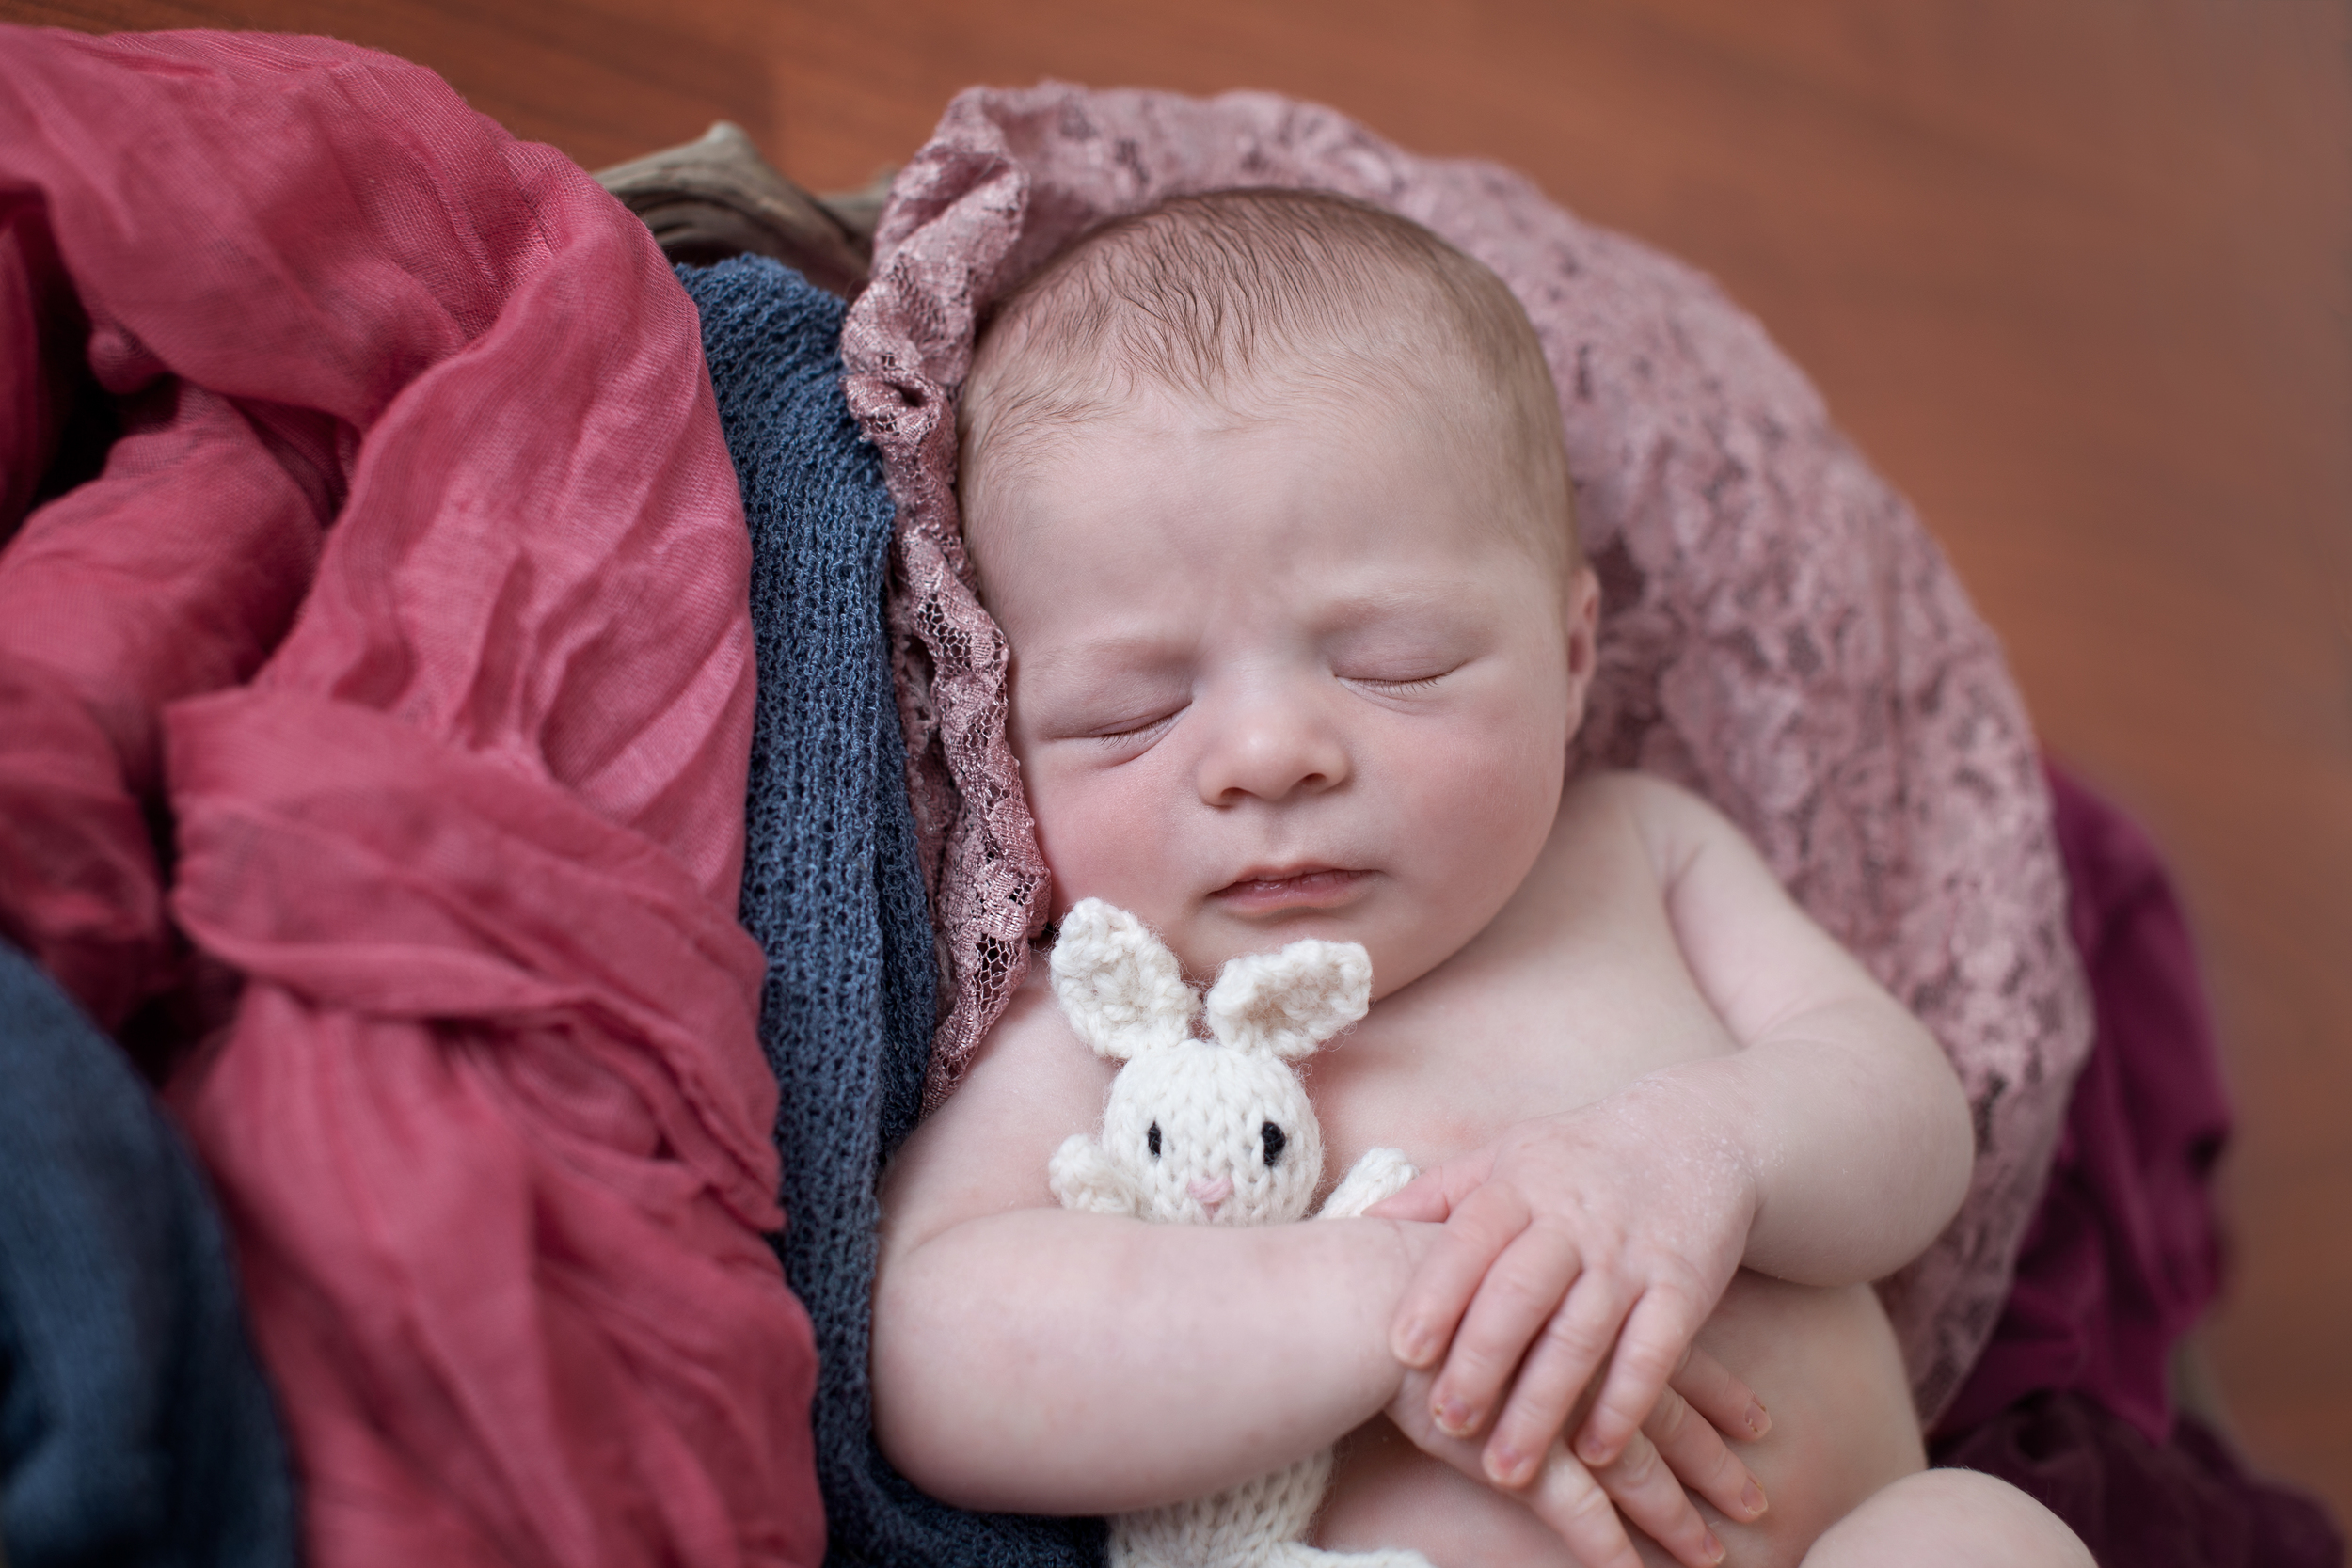 Columbus, Ohio photographer, Professional Portrait Studio, newborn photography. Infant in pink wraps with bunny.